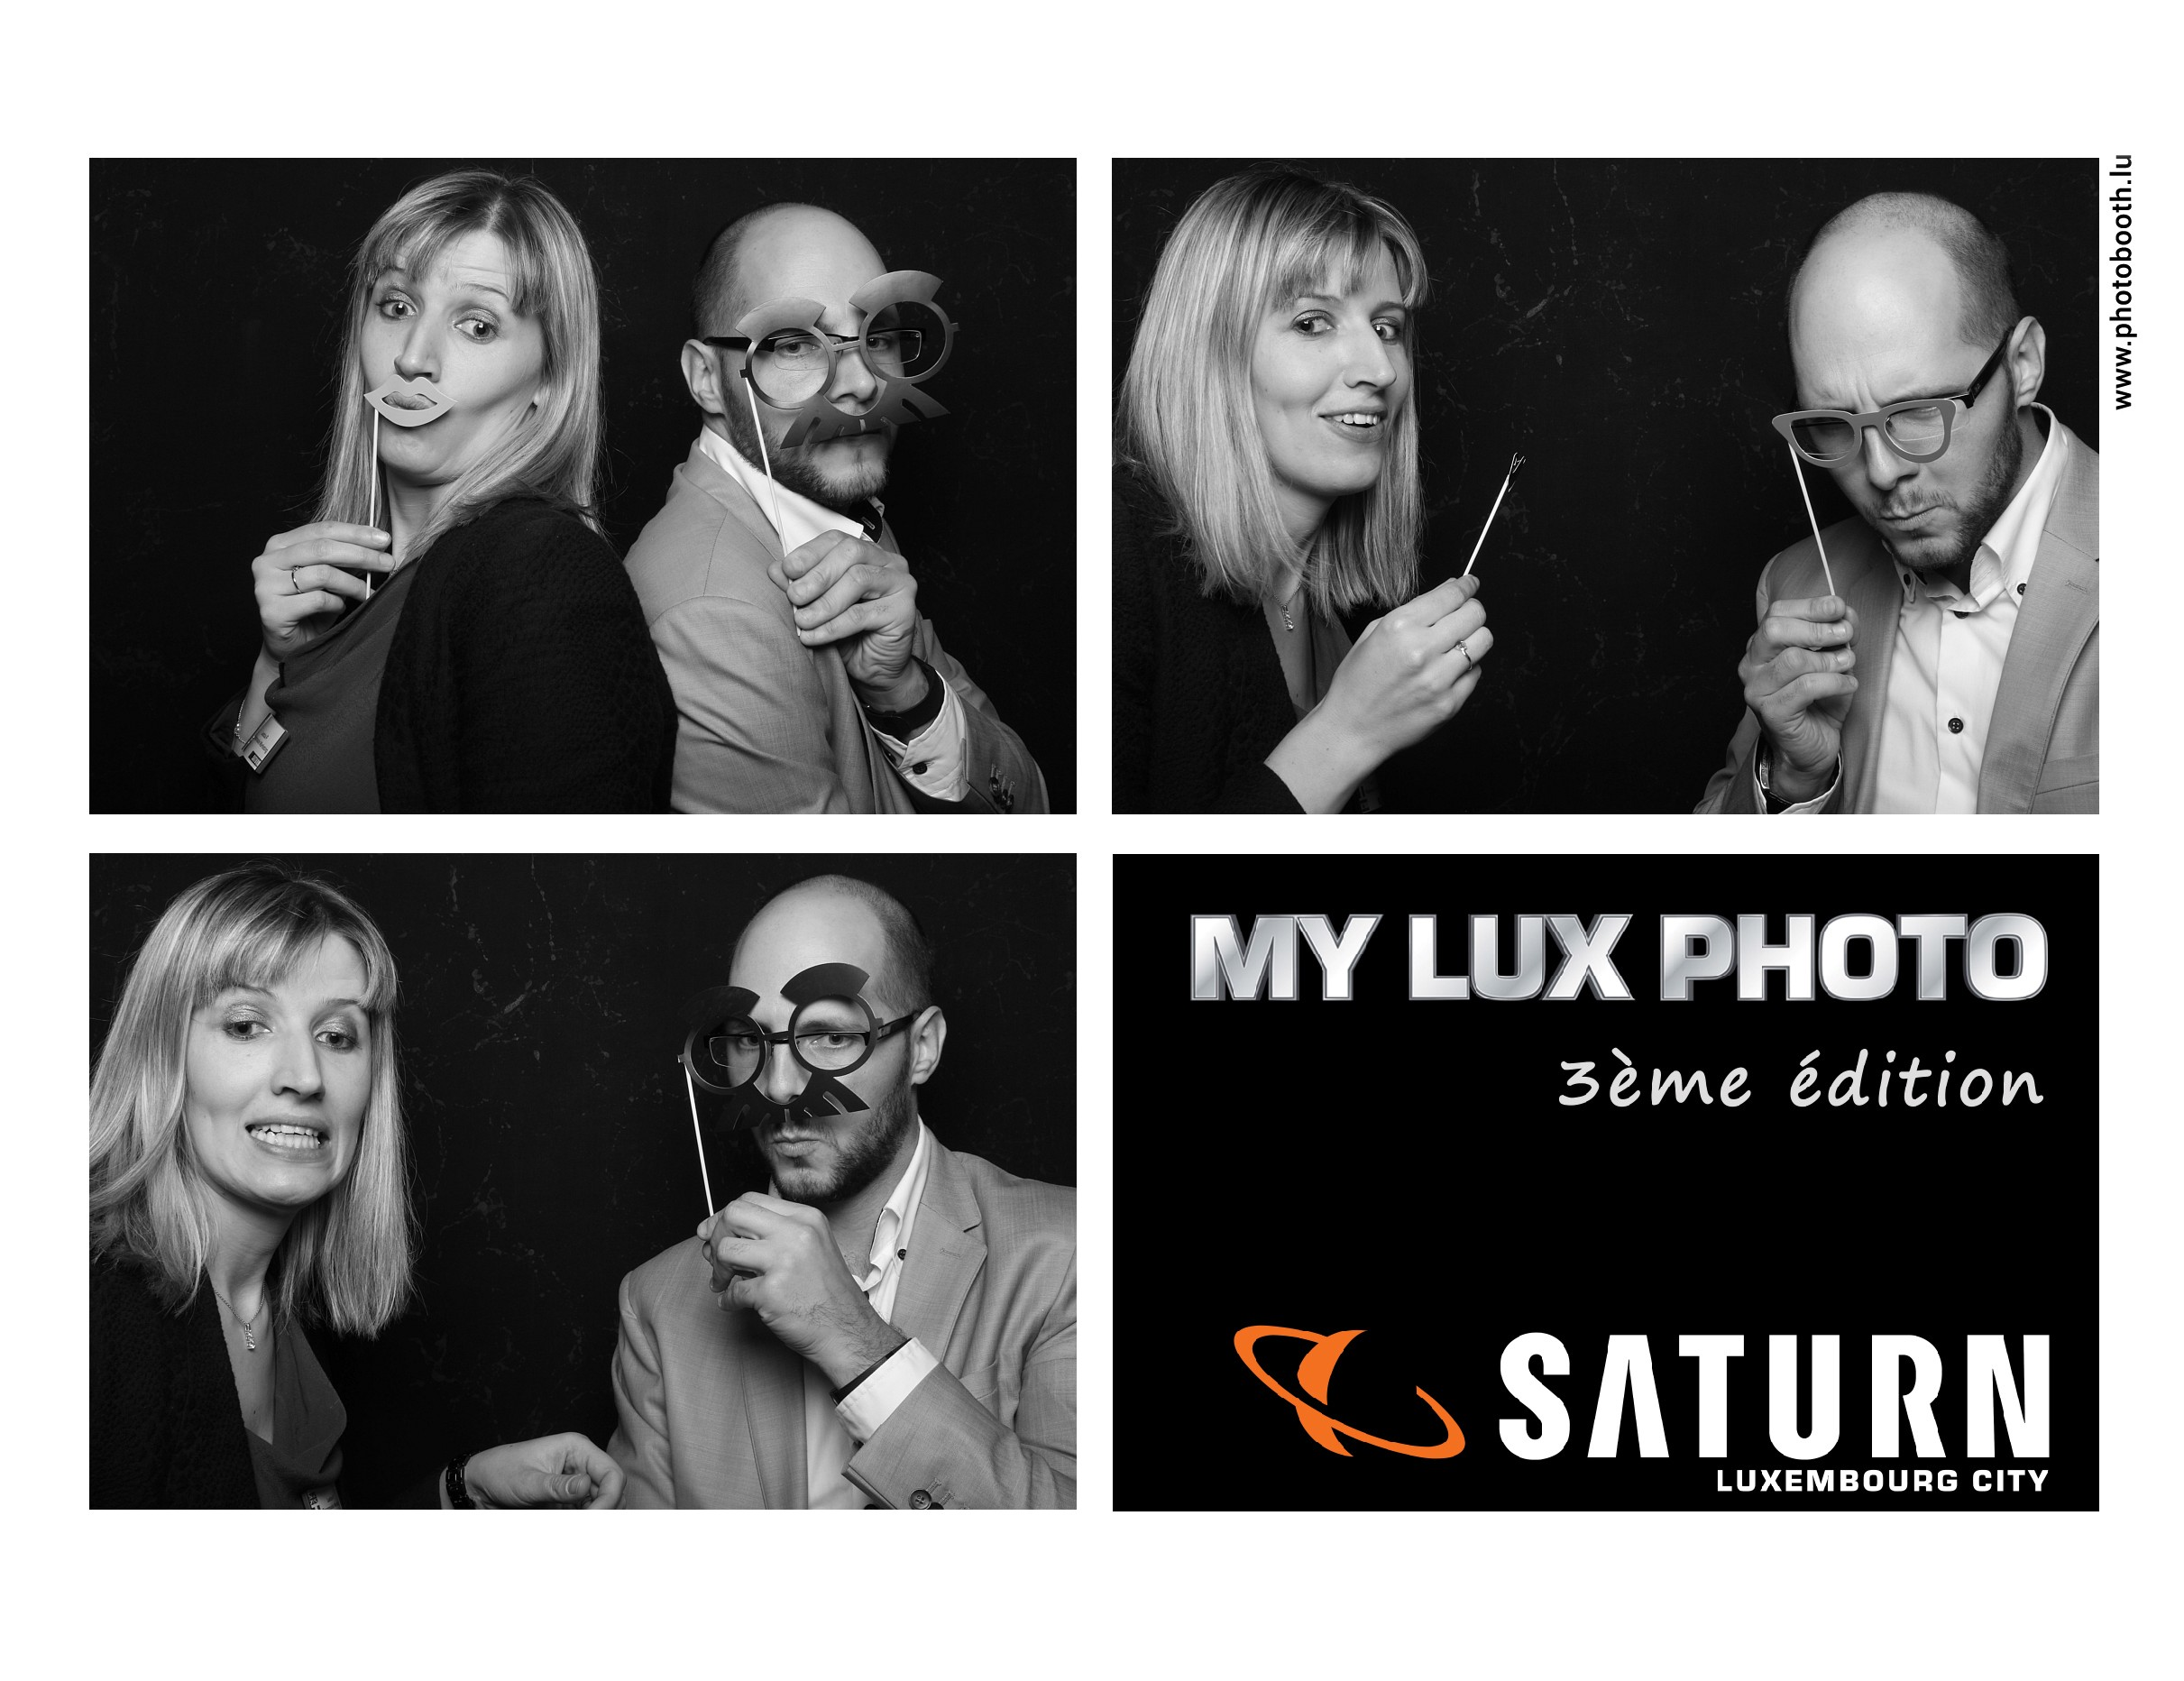 151013_204811 - Le Photobooth Luxembourg